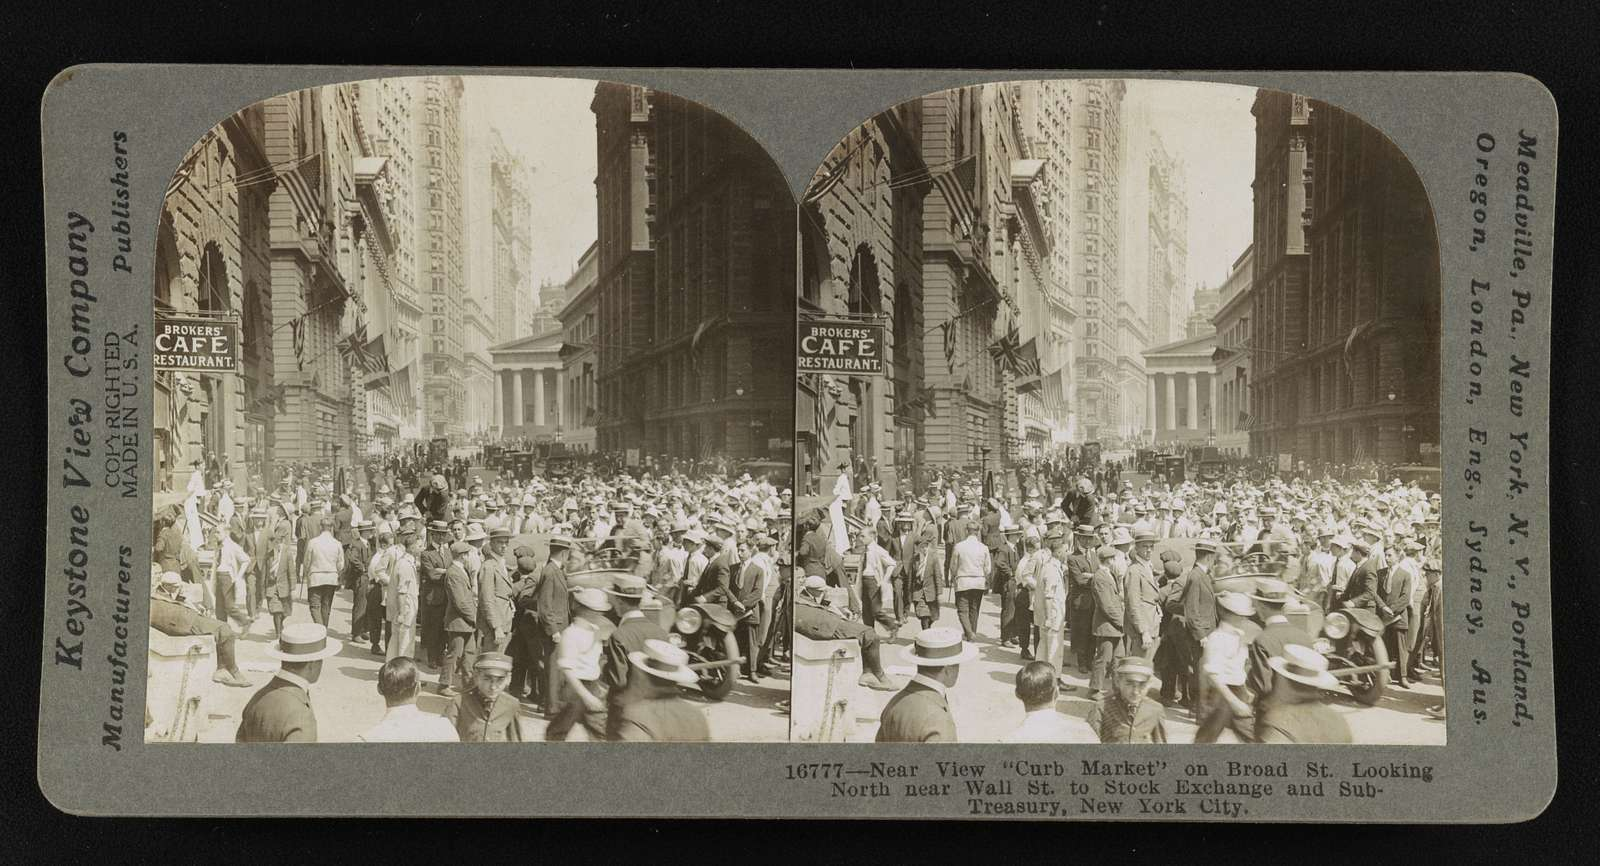 """Near view """"Curb Market"""" on Broad St. looking north near Wall St. to Stock Exchange and Sub-Treasury, New York City"""